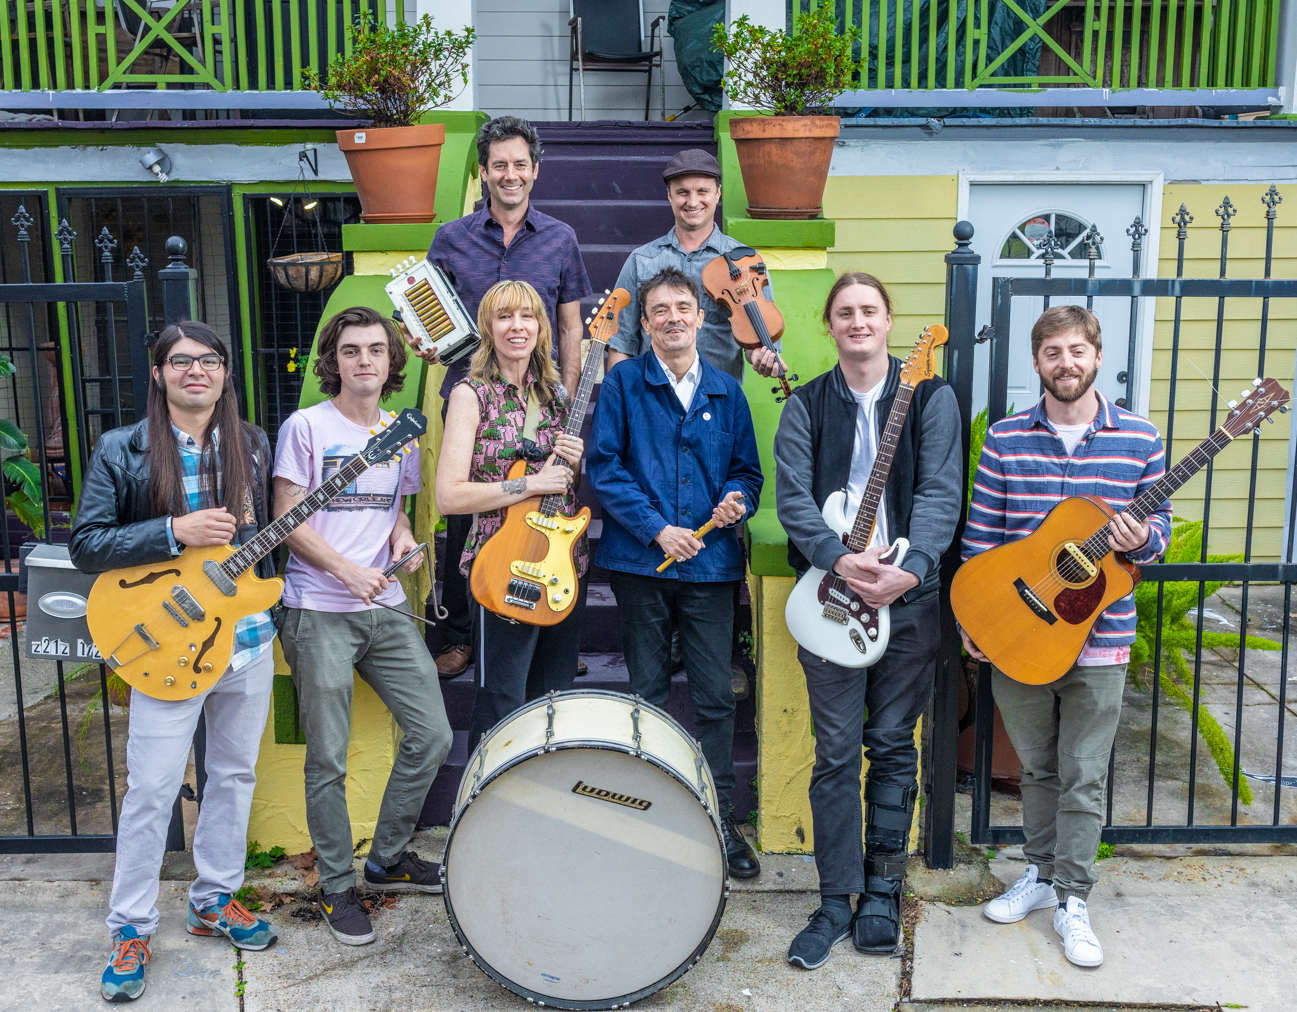 Spider Stacy on the Pogues, Lost Bayou Ramblers, and 'A Fairytale of New York'